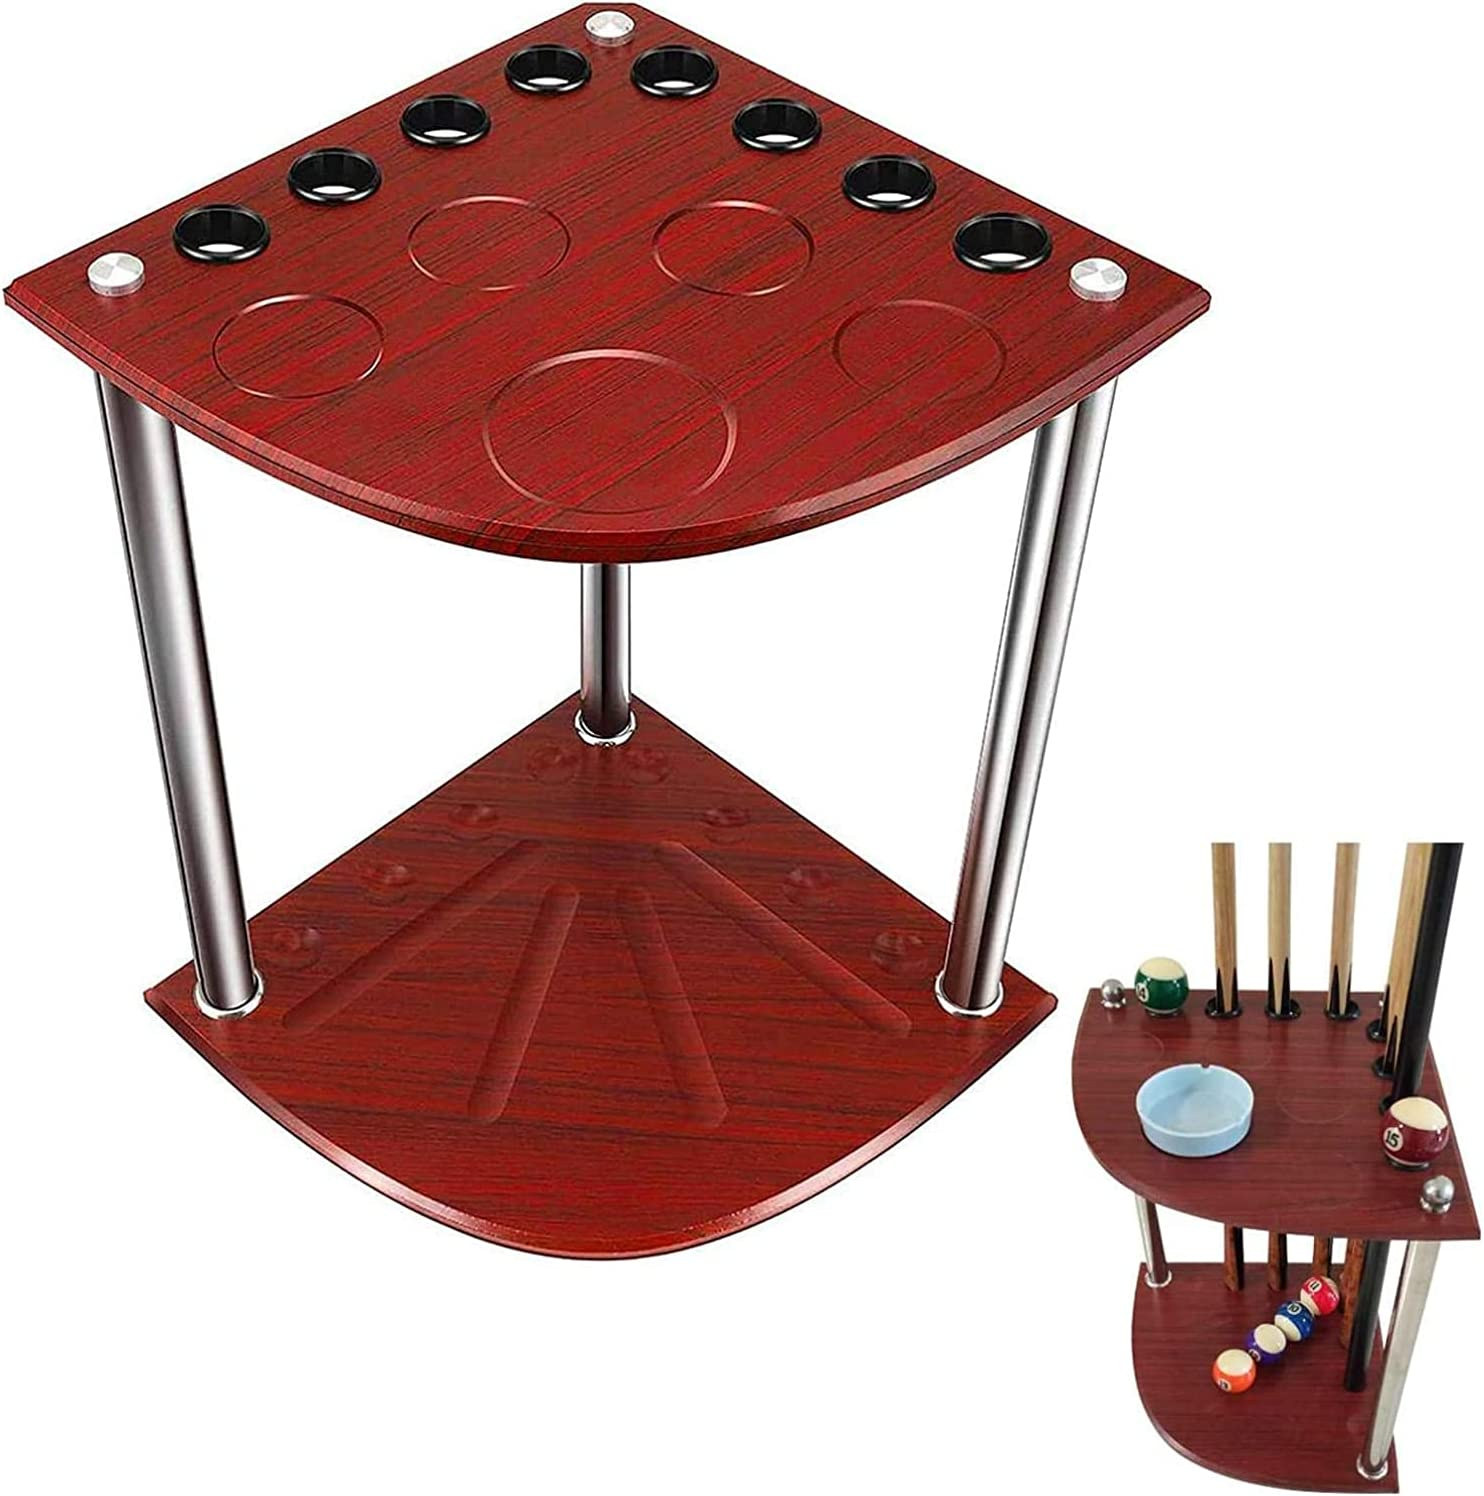 YIQQWS0915 Pool Cue Rack Super beauty product restock quality top New Shipping Free Shipping Stick Billiards Billiard